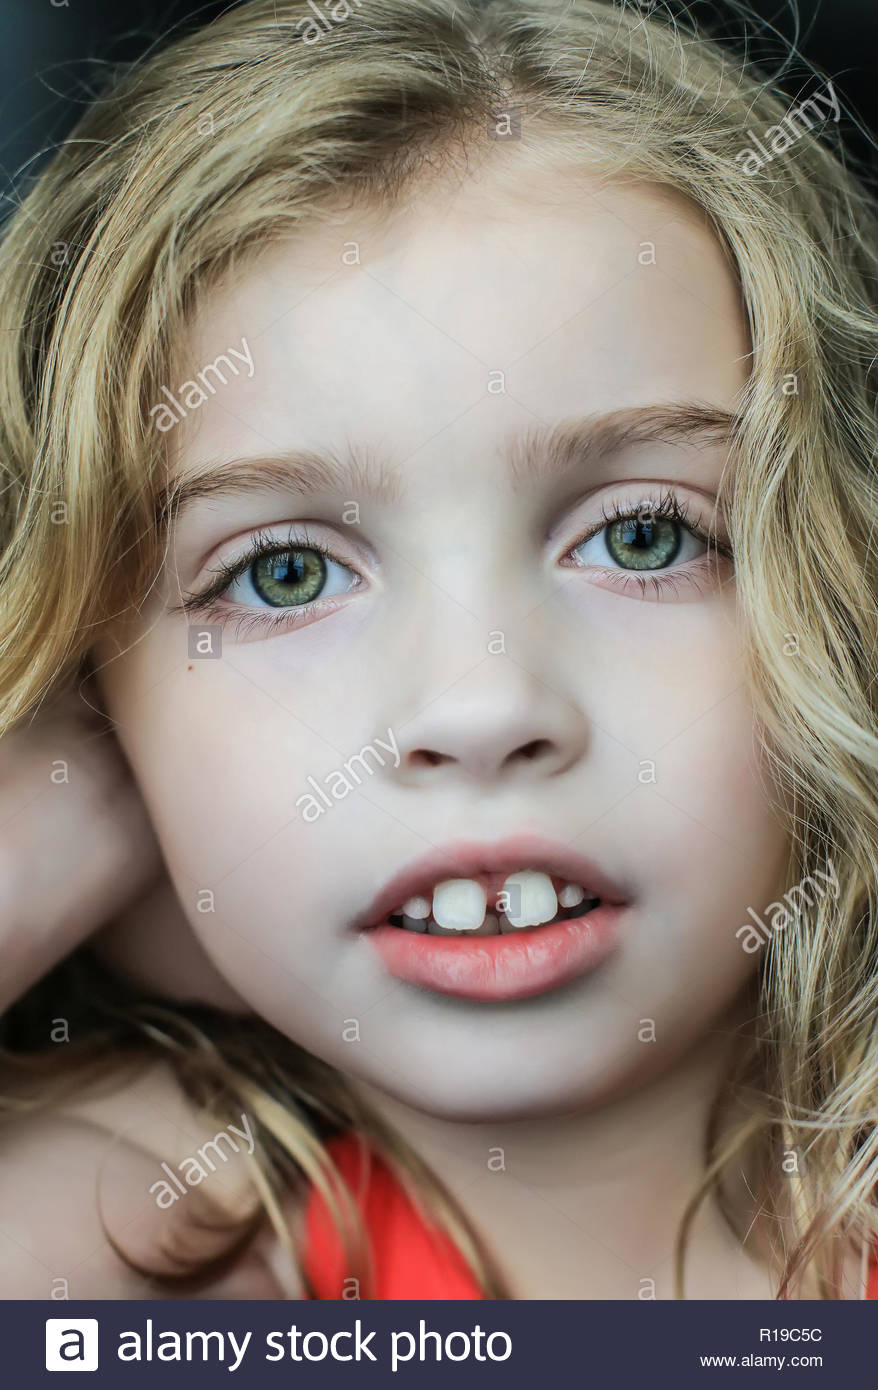 headshot of girl with autism looking at the camera seriously - Stock Image